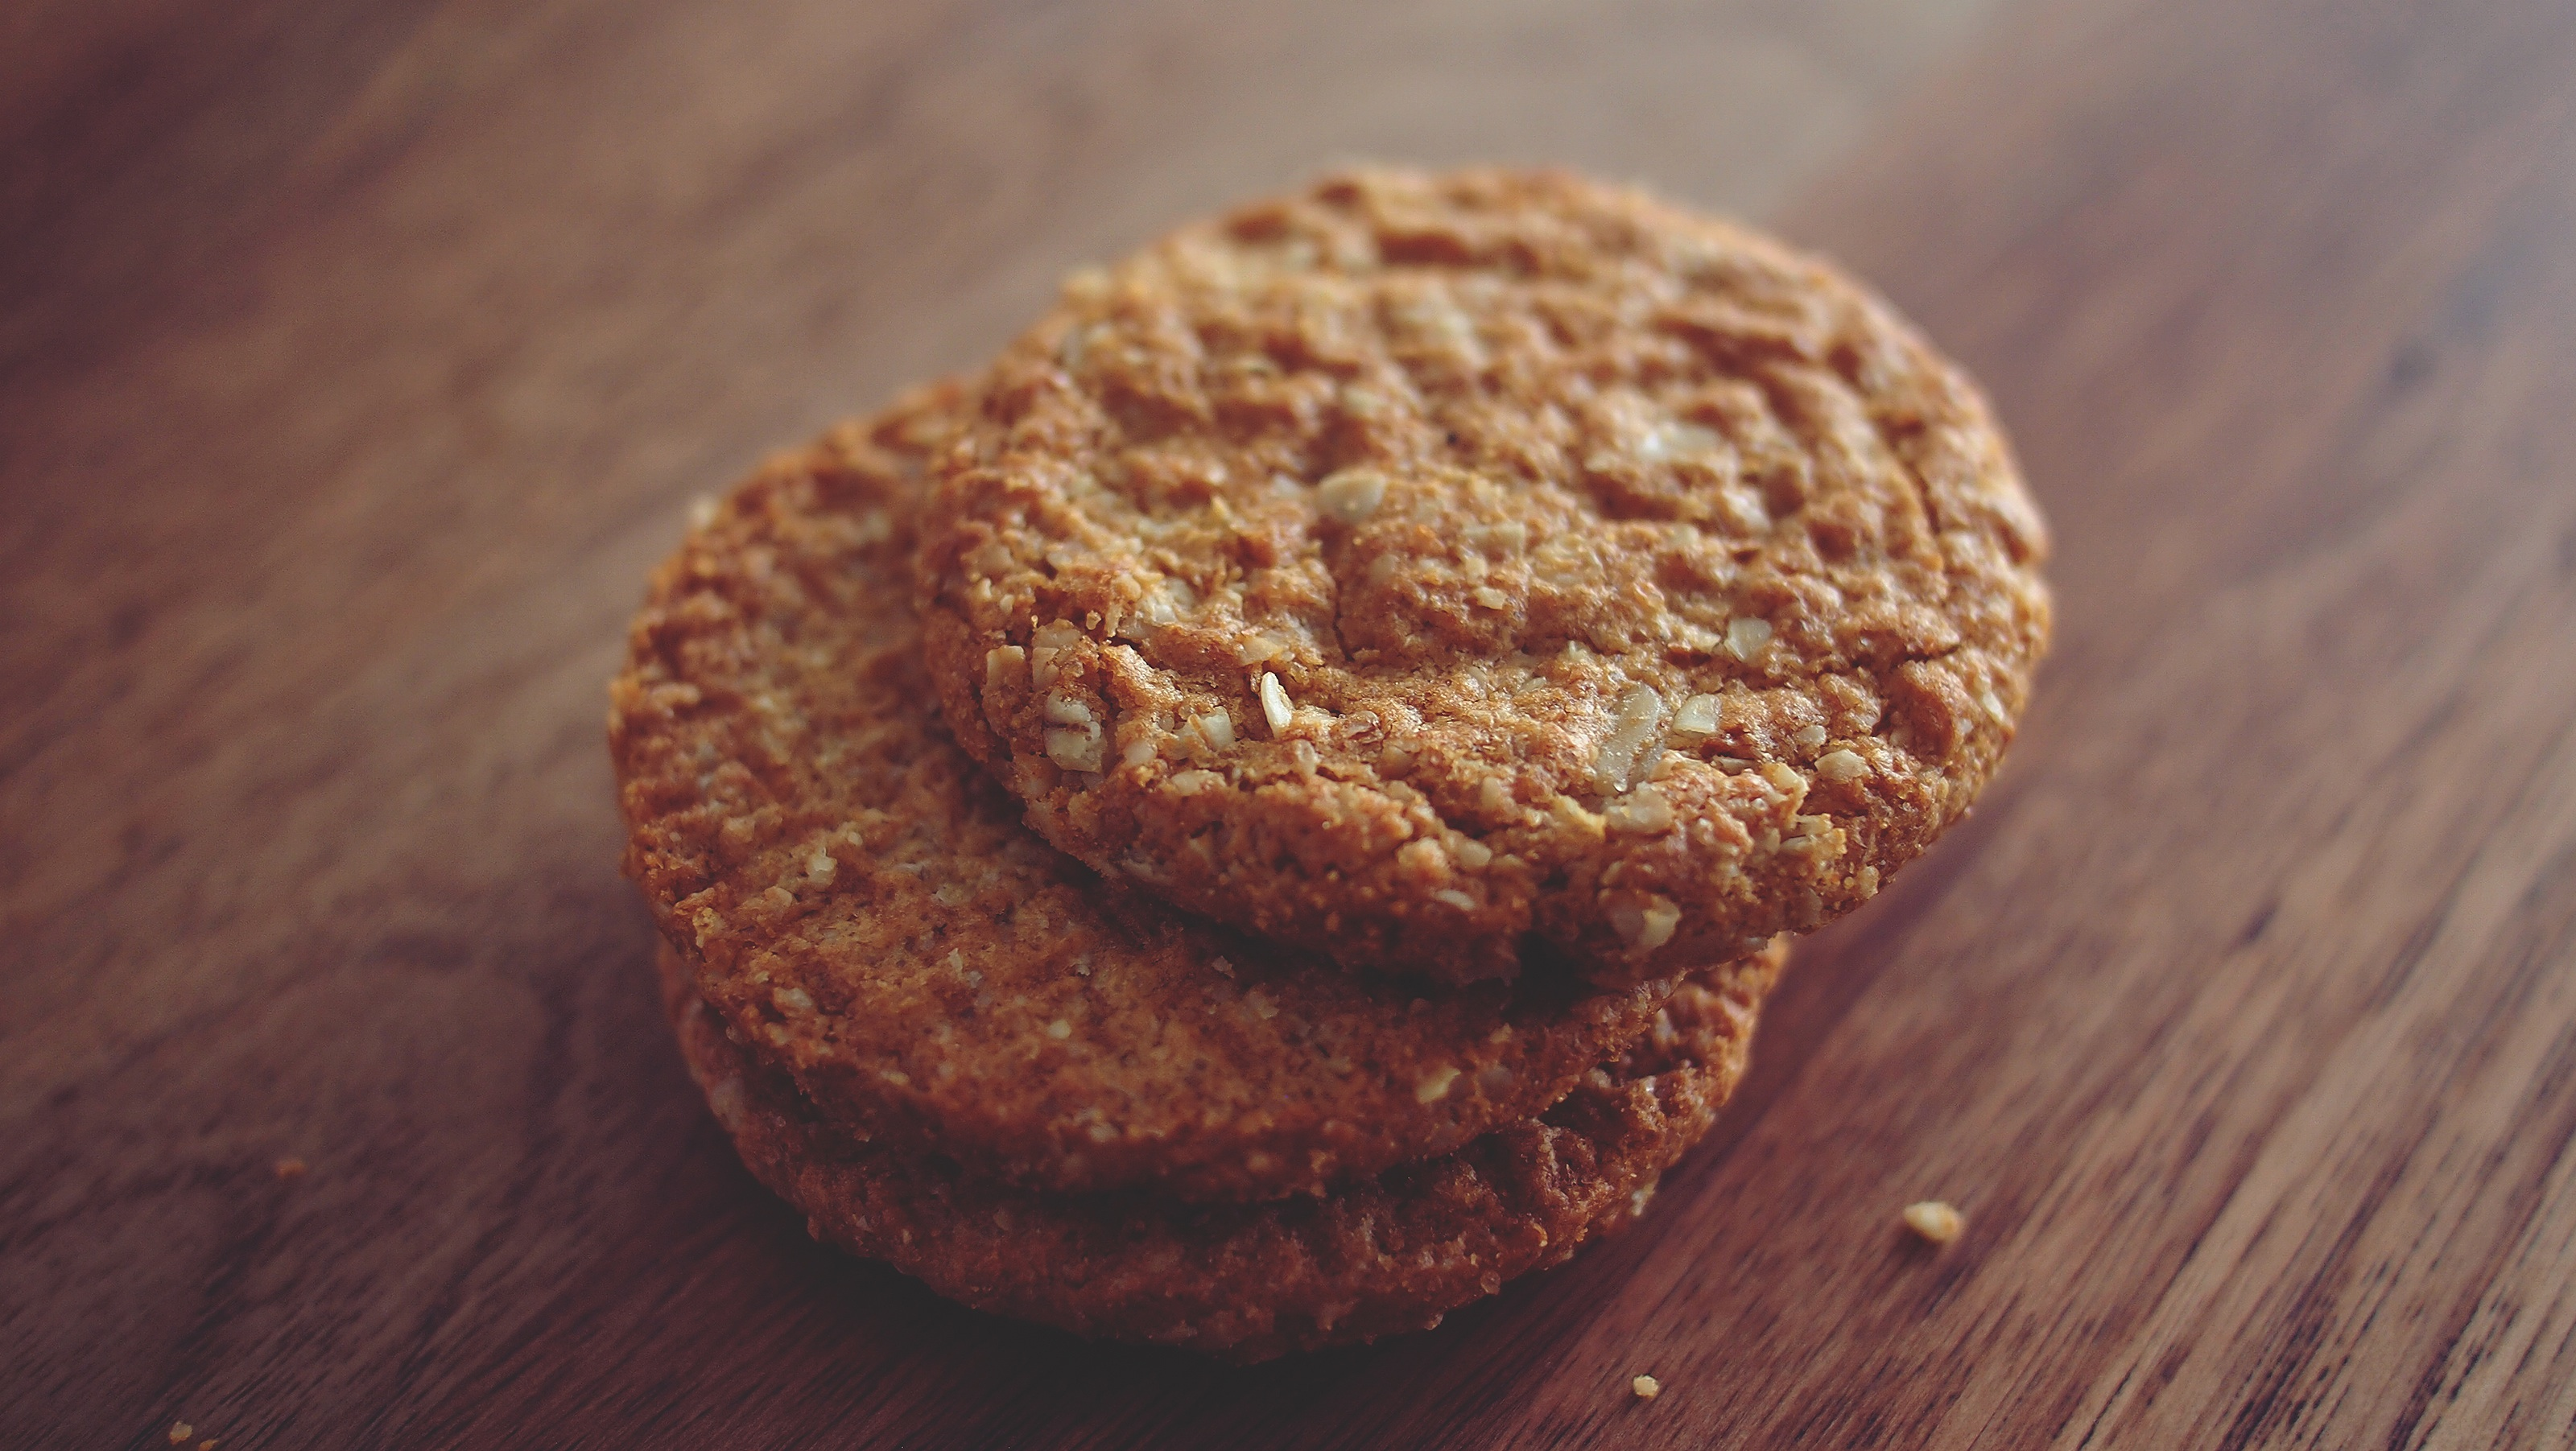 Eat it, Biscuit, Cookie, Eat, Food, HQ Photo